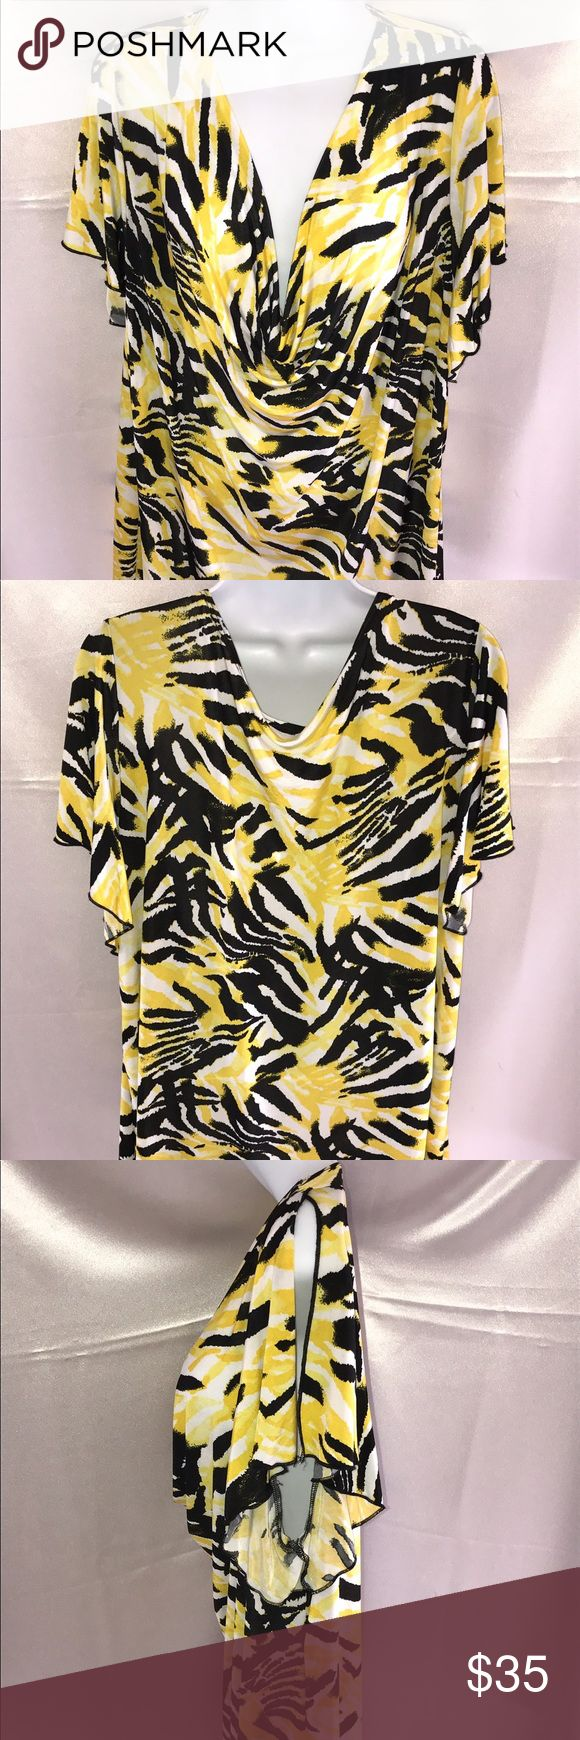 Black and yellow short sleeves top Nice and light summer top, great for traveling and summer activities Tops Tunics